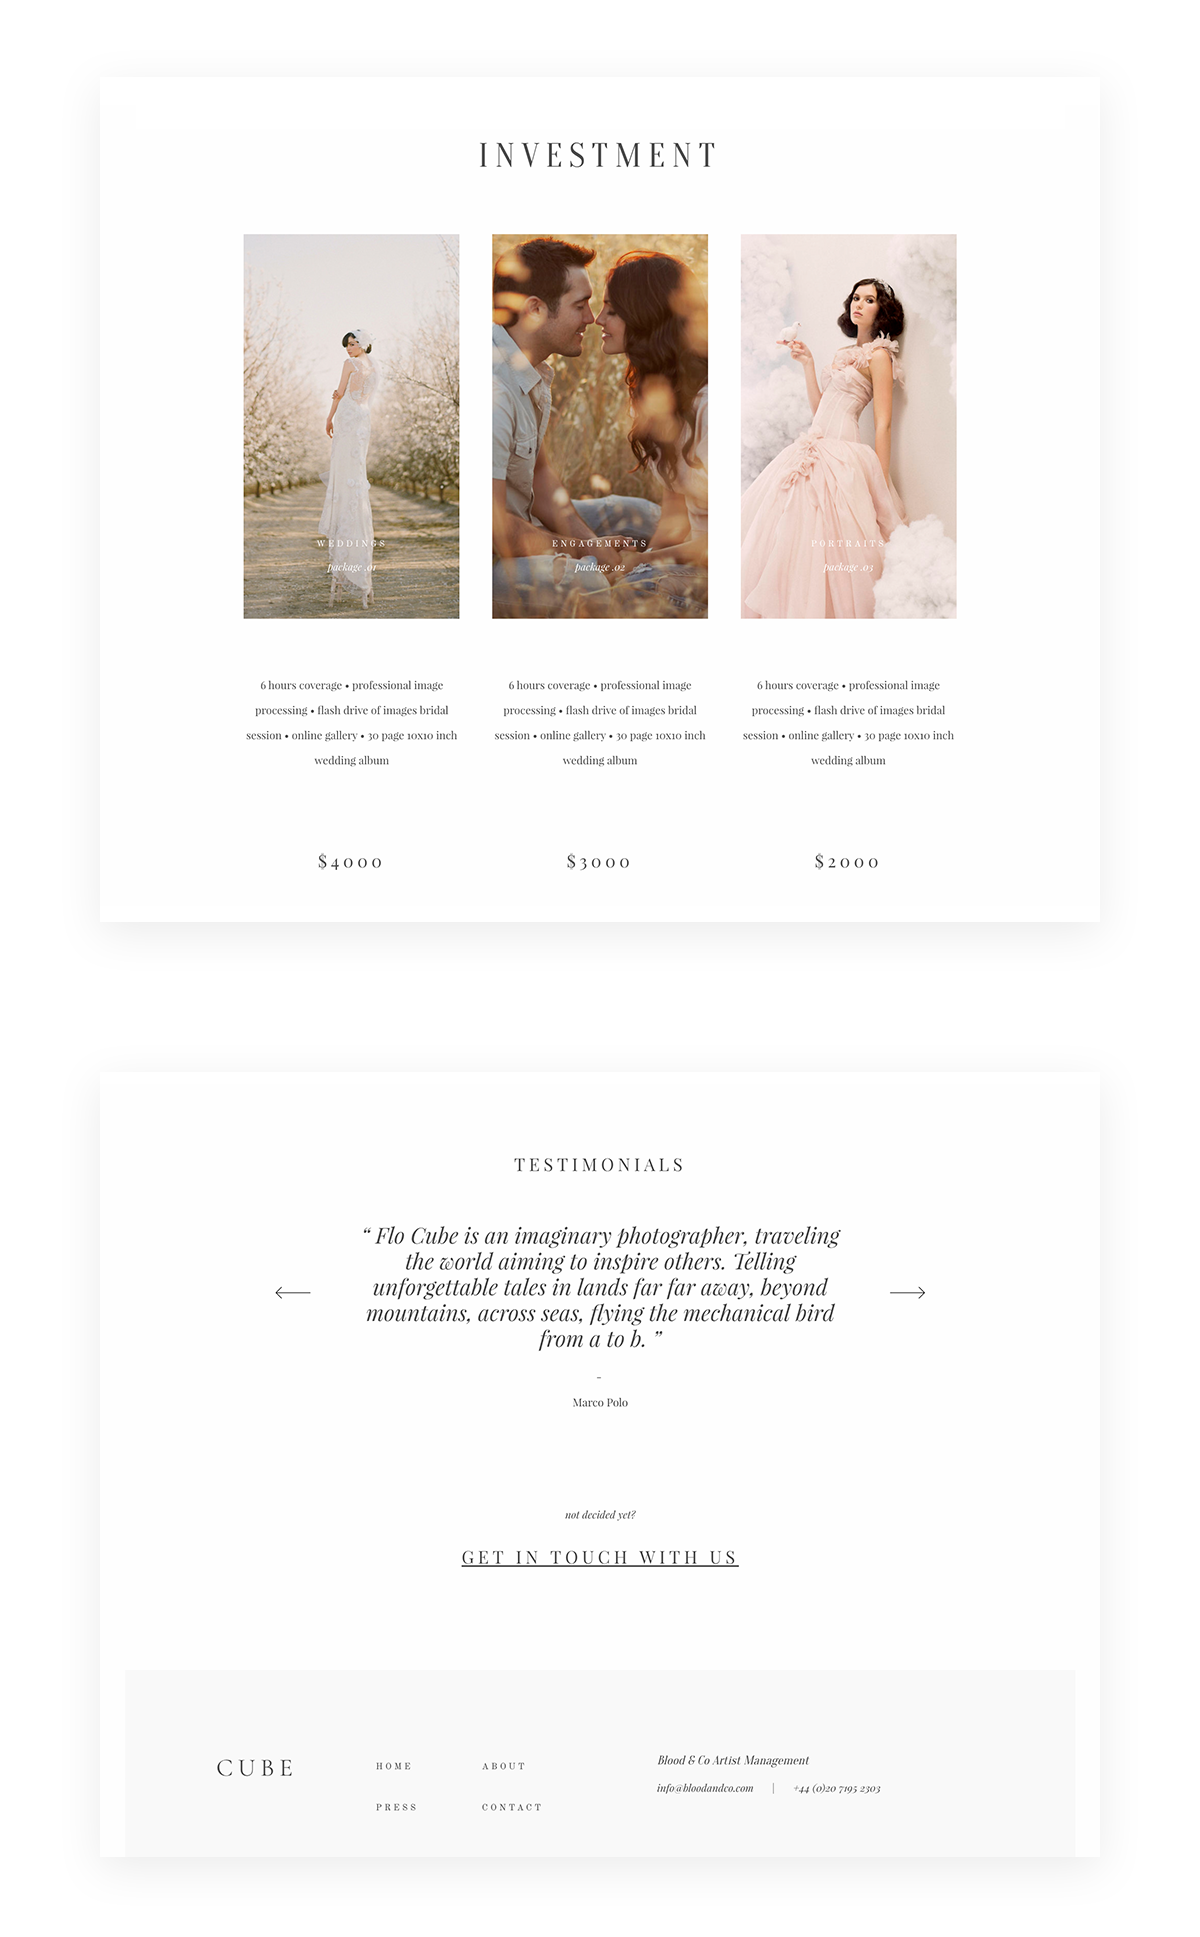 Cube Website Theme WordPress wedding photography, testimonials, pricing page & investment